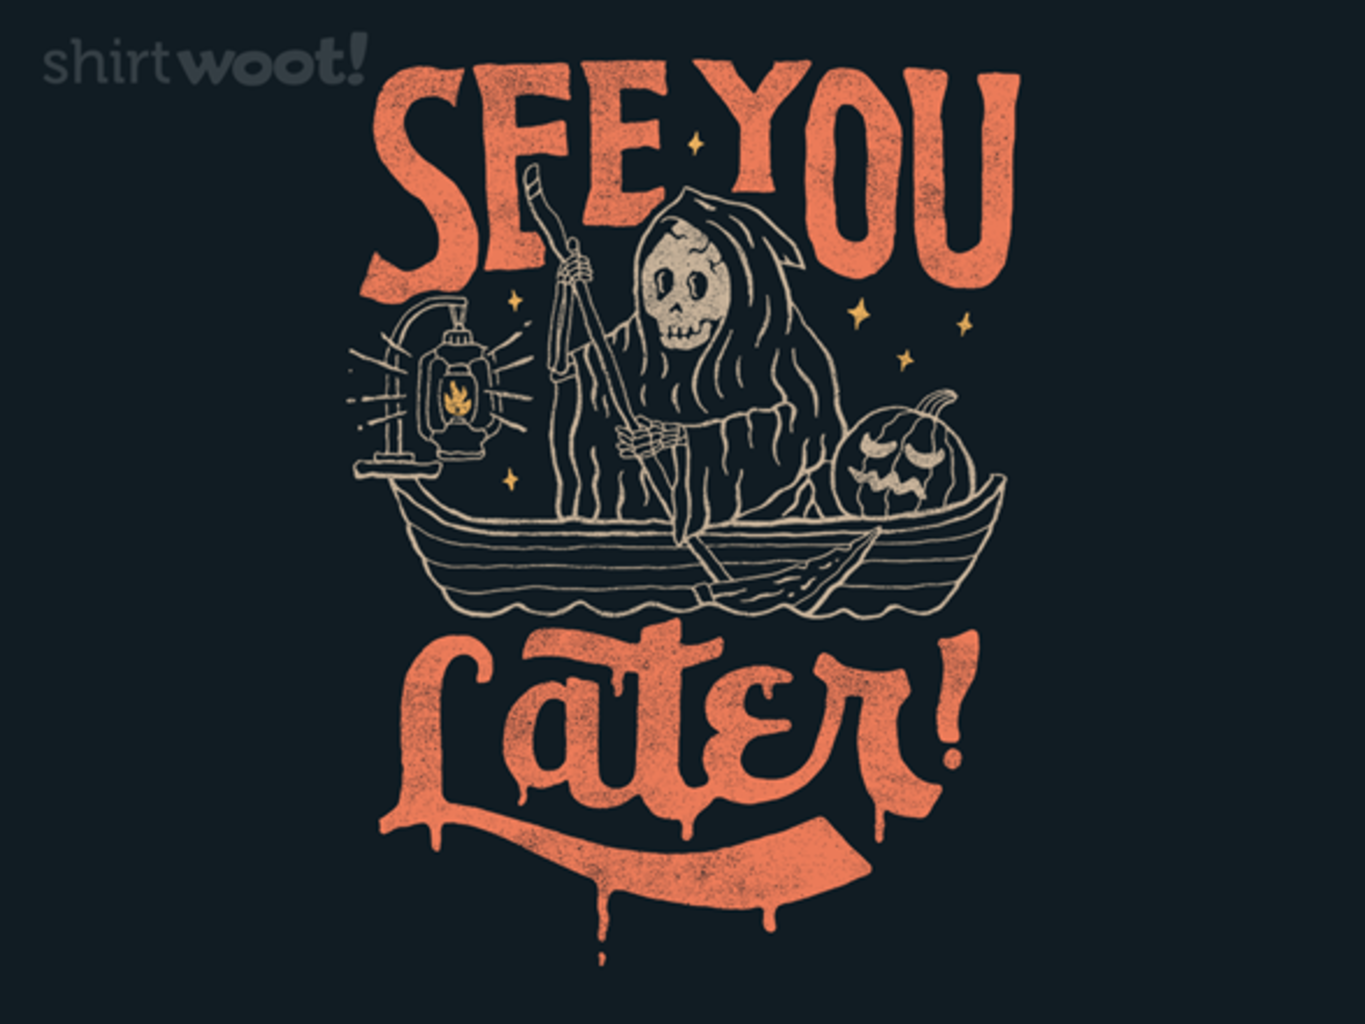 Woot!: See You - $7.00 + $5 standard shipping